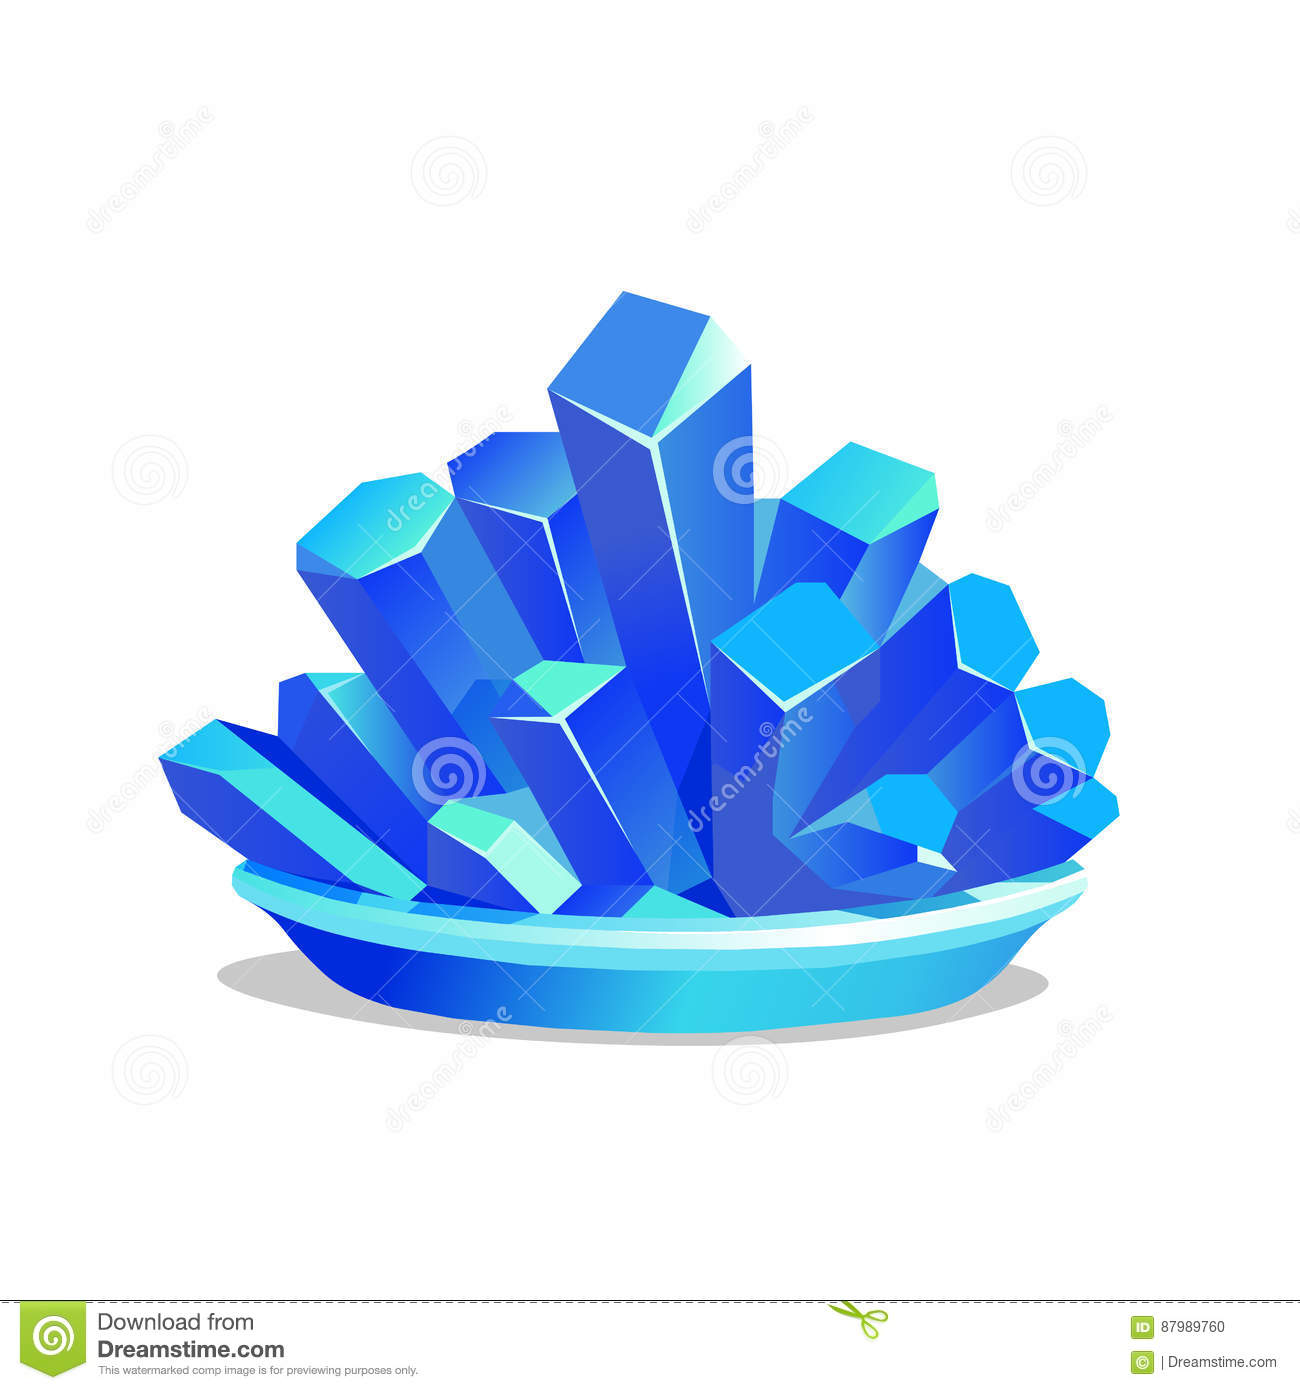 Blue Crystals Of Copper Sulfate Stock Vector - Illustration of